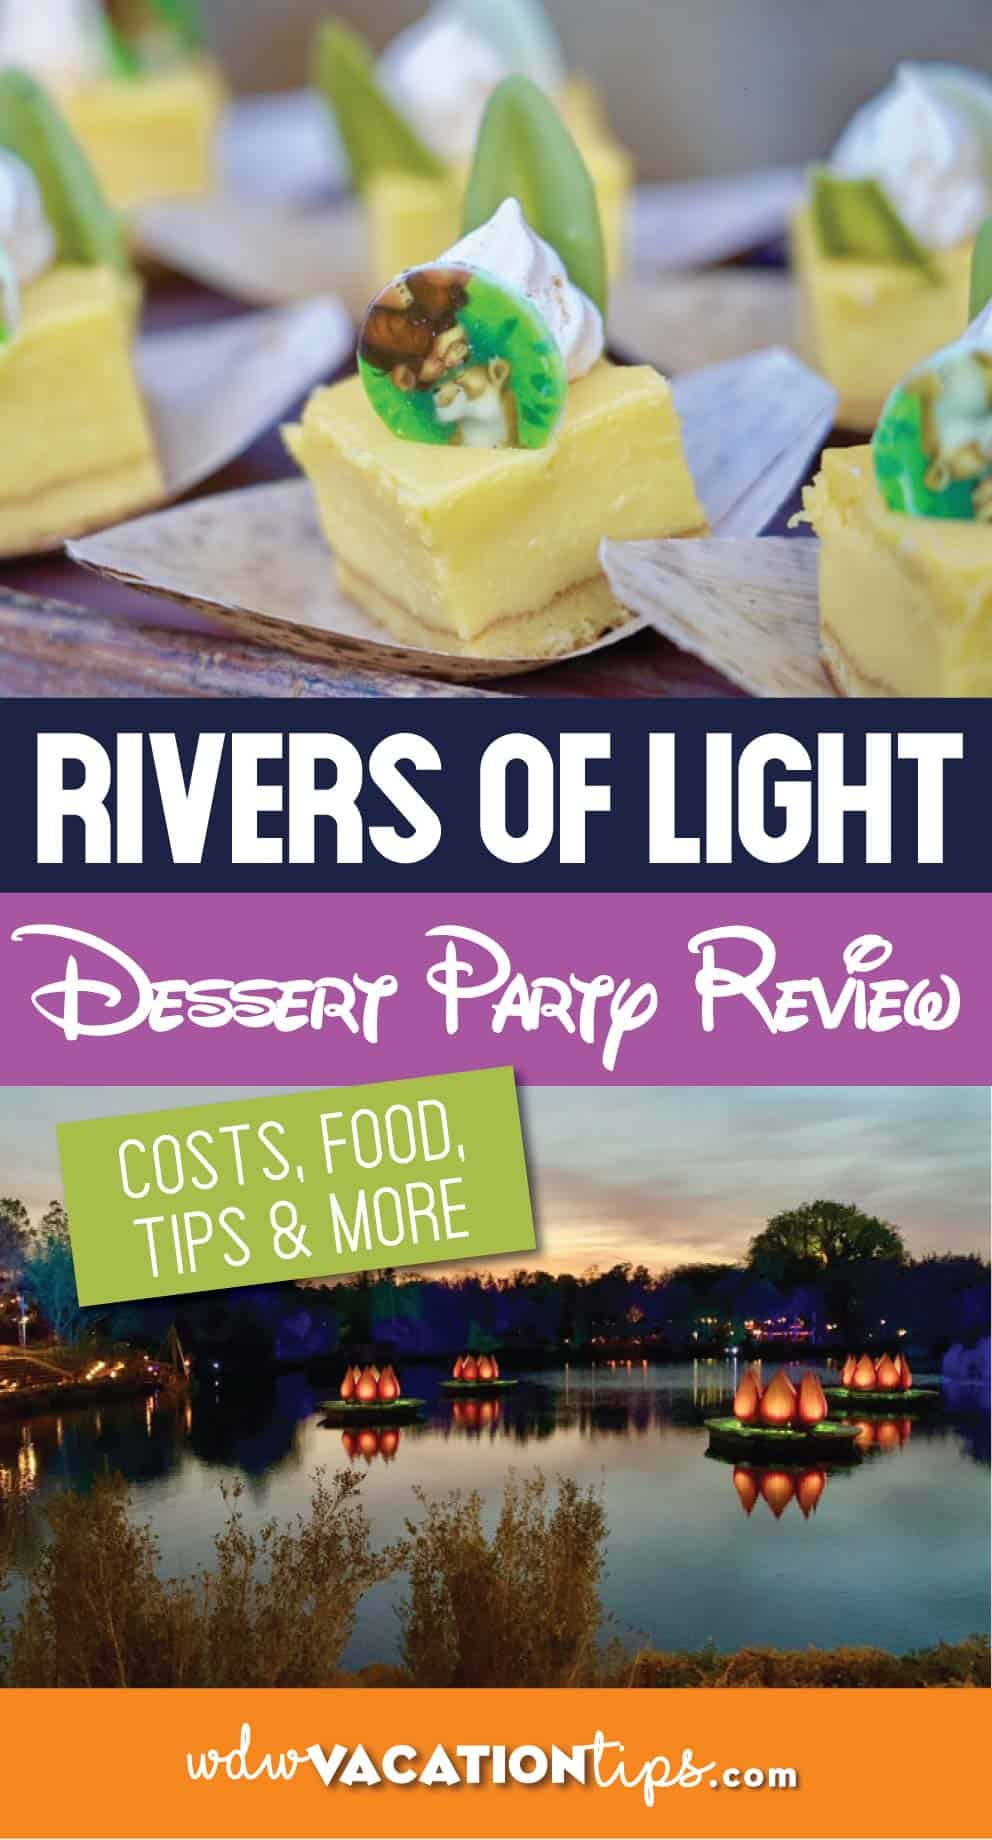 Review of Rivers of Light Dessert Party 35